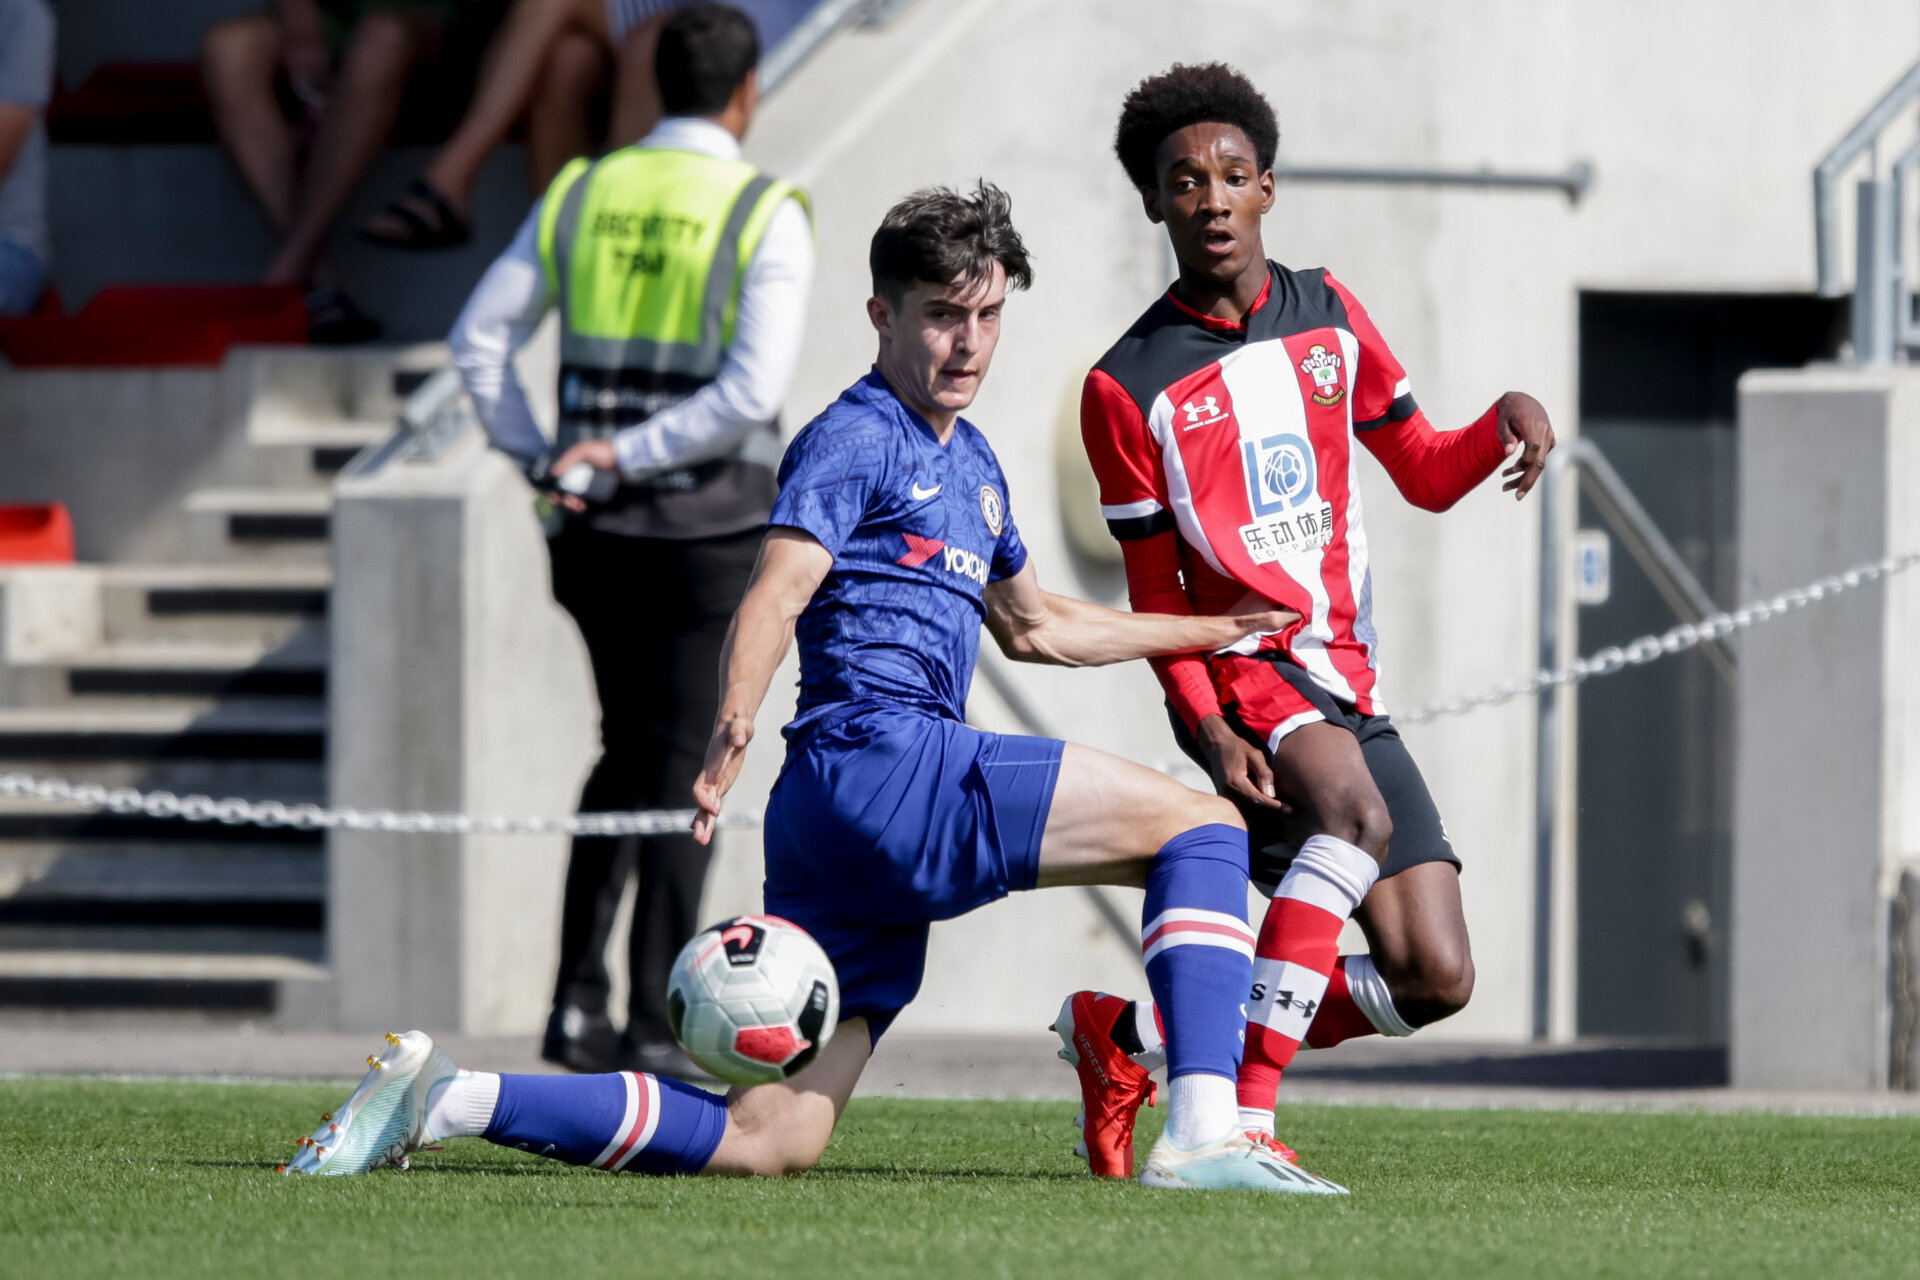 during the Premier League U18 match between Southampton and Chelsea at Staplewood, Marchwood, England on 24 August 2019. Photo by Robin Jones.